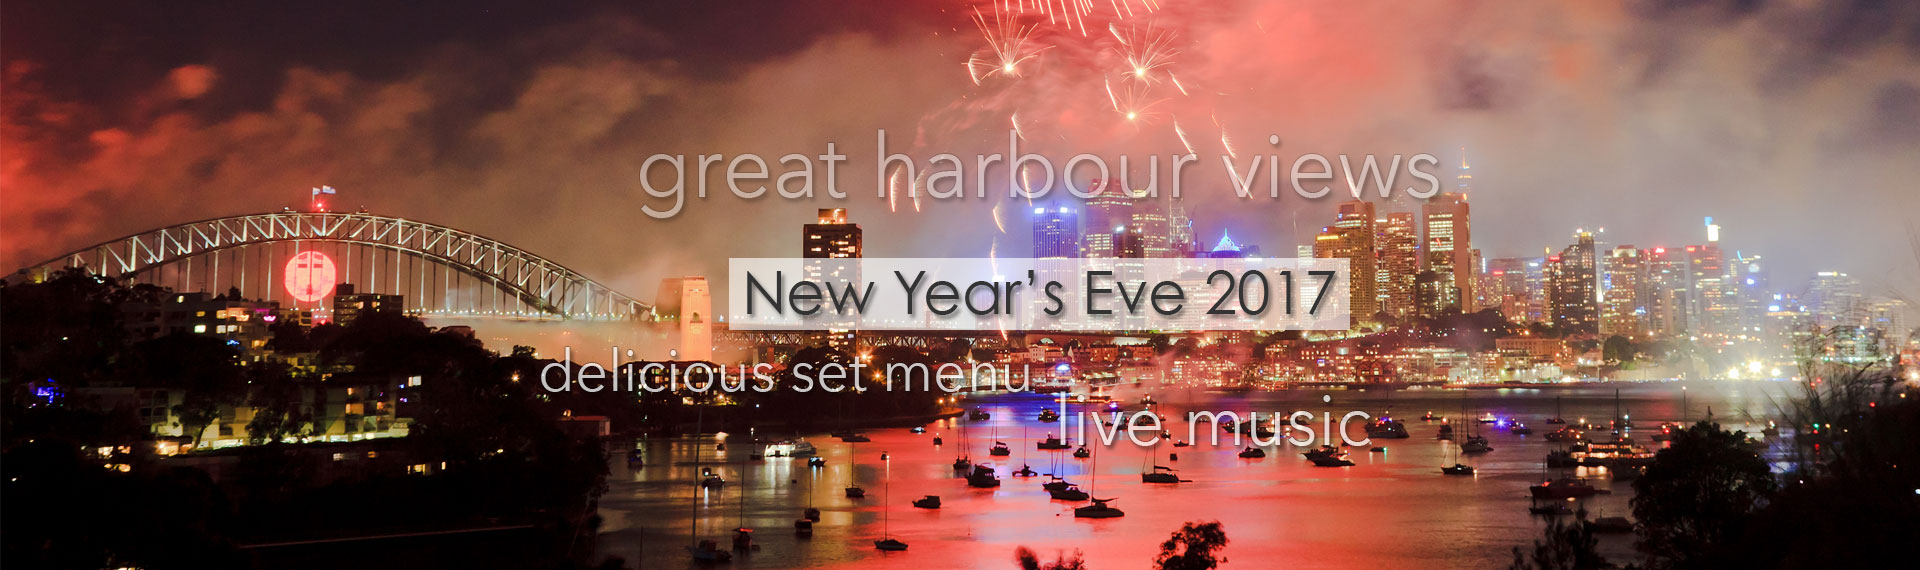 new year's eve at the hero of waterloo 17 december 2017